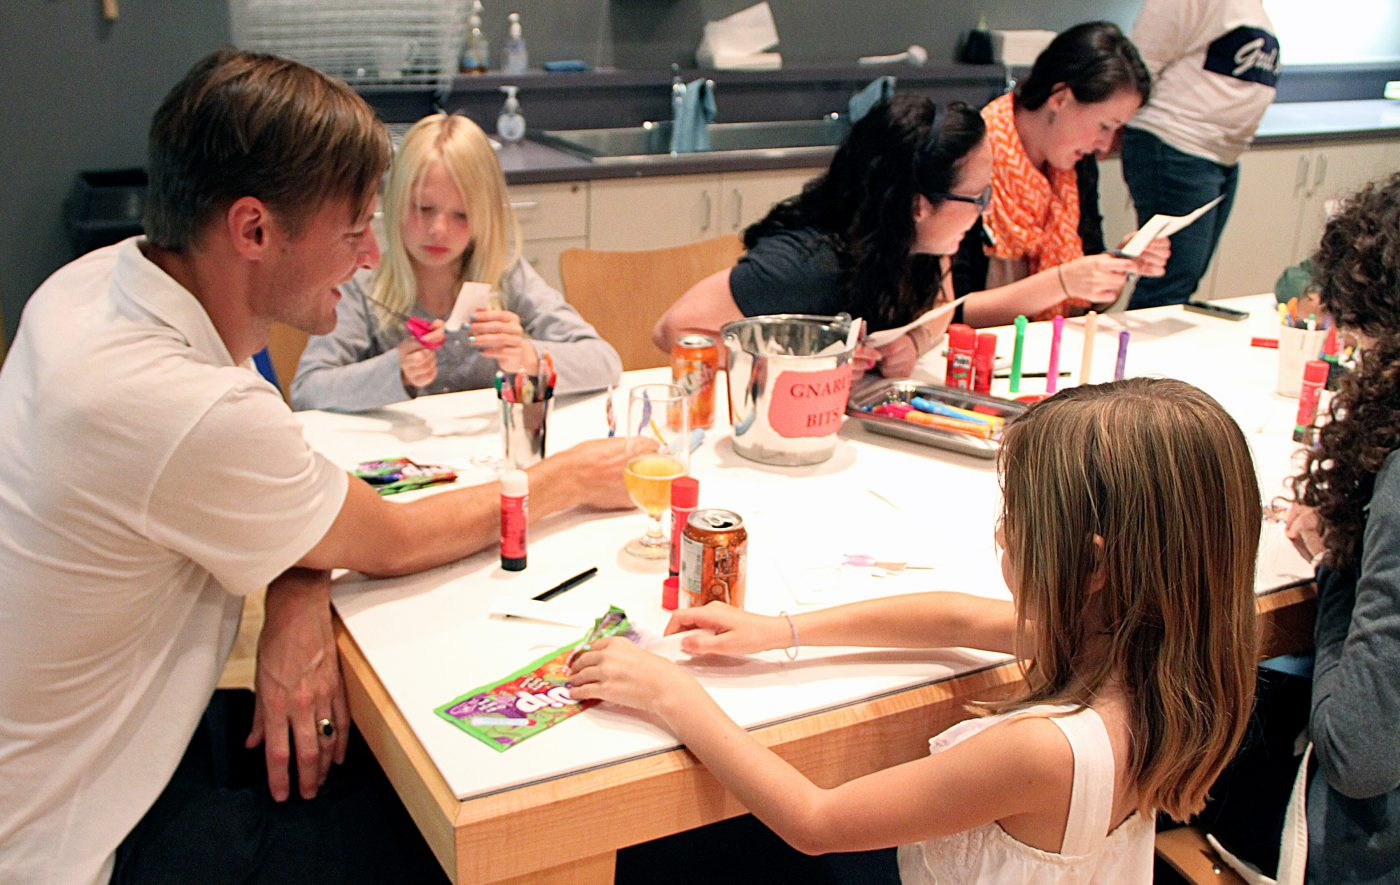 Families participate in art activities in the Discovery Room.